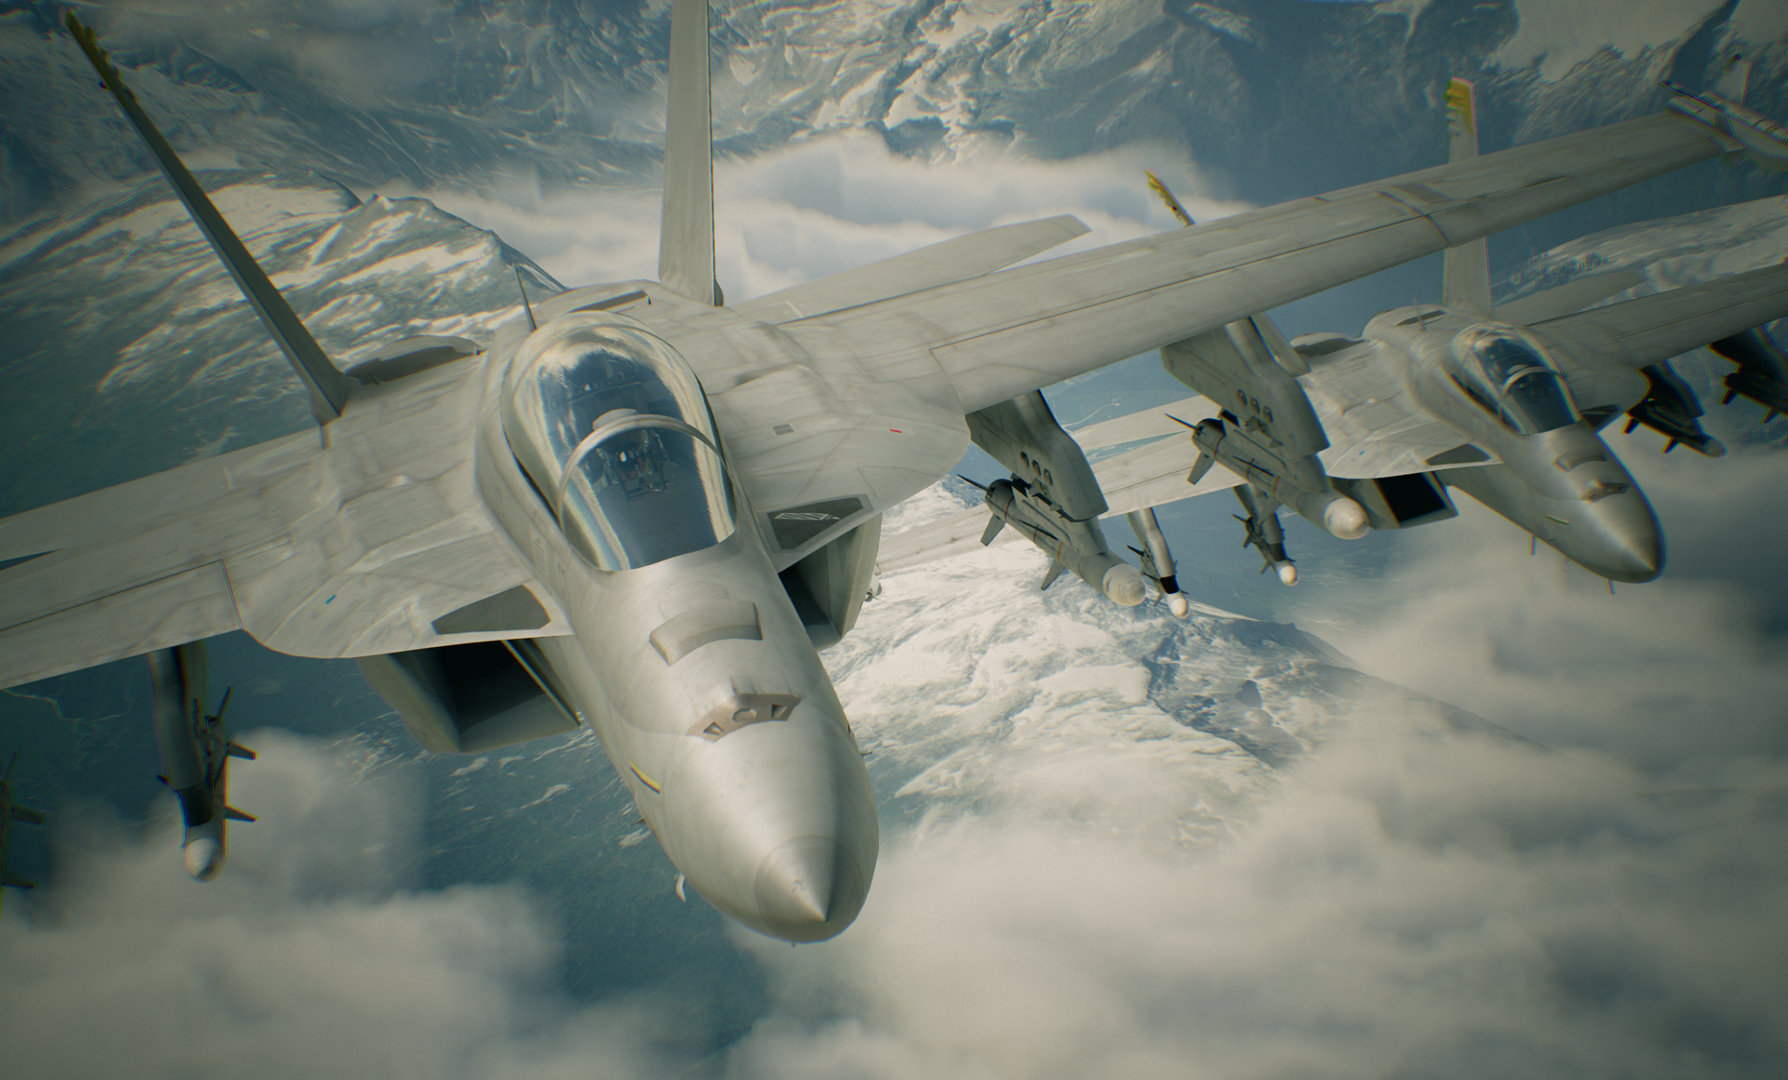 """The announcement of the newest """"Act Combat"""" video game, """"Ace Combat 7,"""" was among the news broadcasted live from the Playstation Experience event in San Francisco on December 7. (Courtesy/Playstation)"""